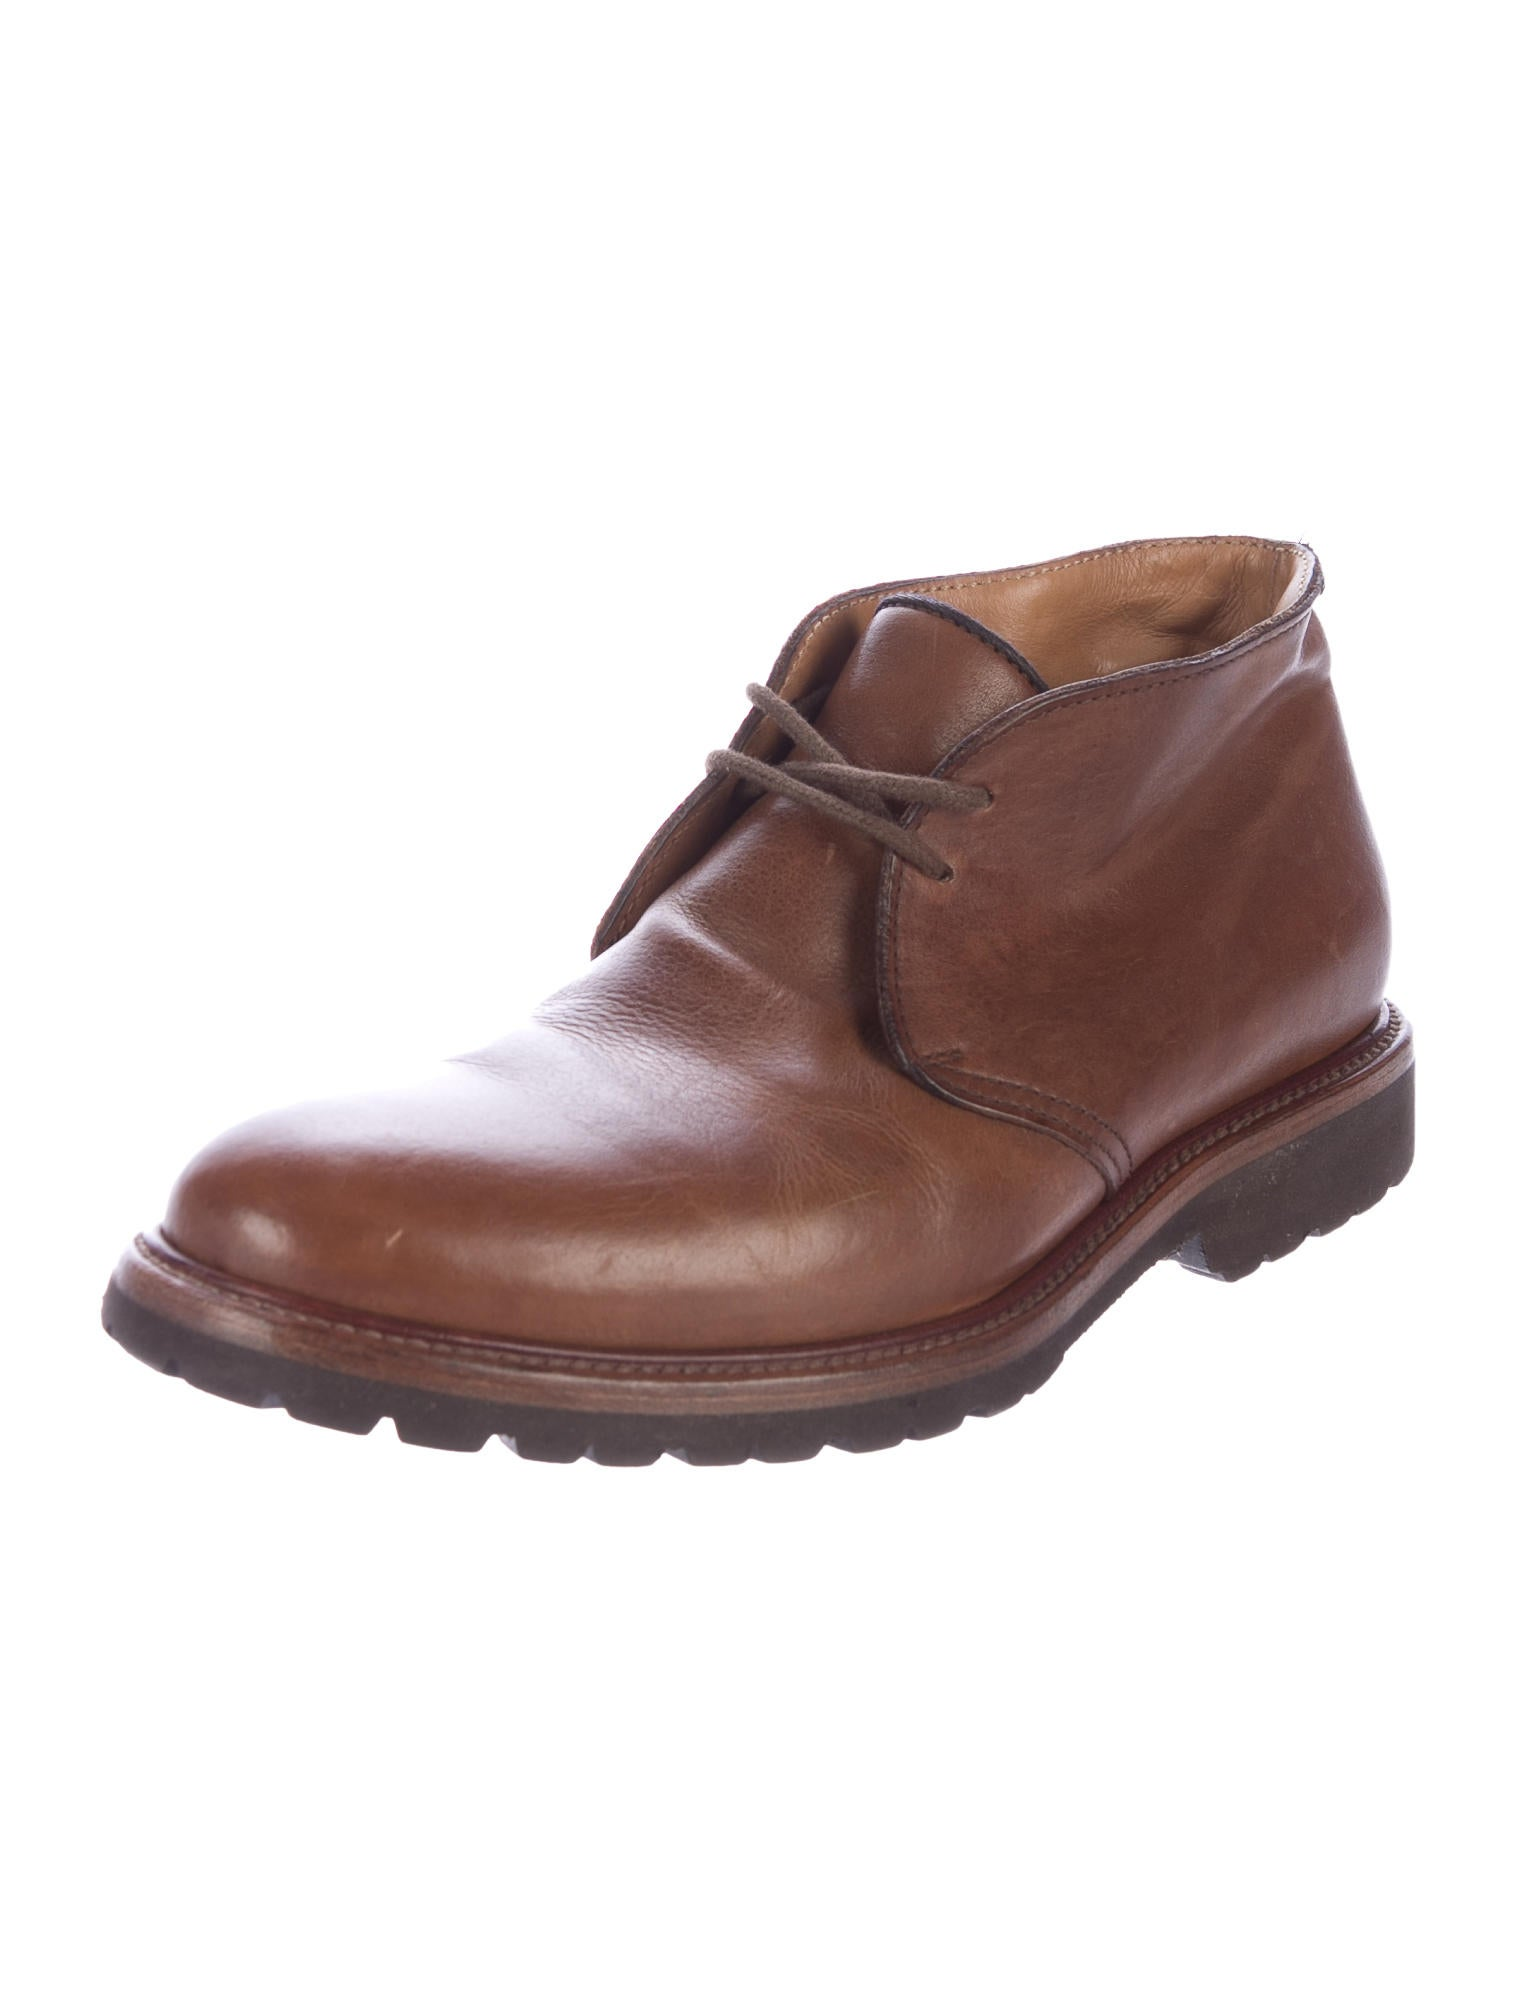 brunello cucinelli leather chukka boots shoes bru51848